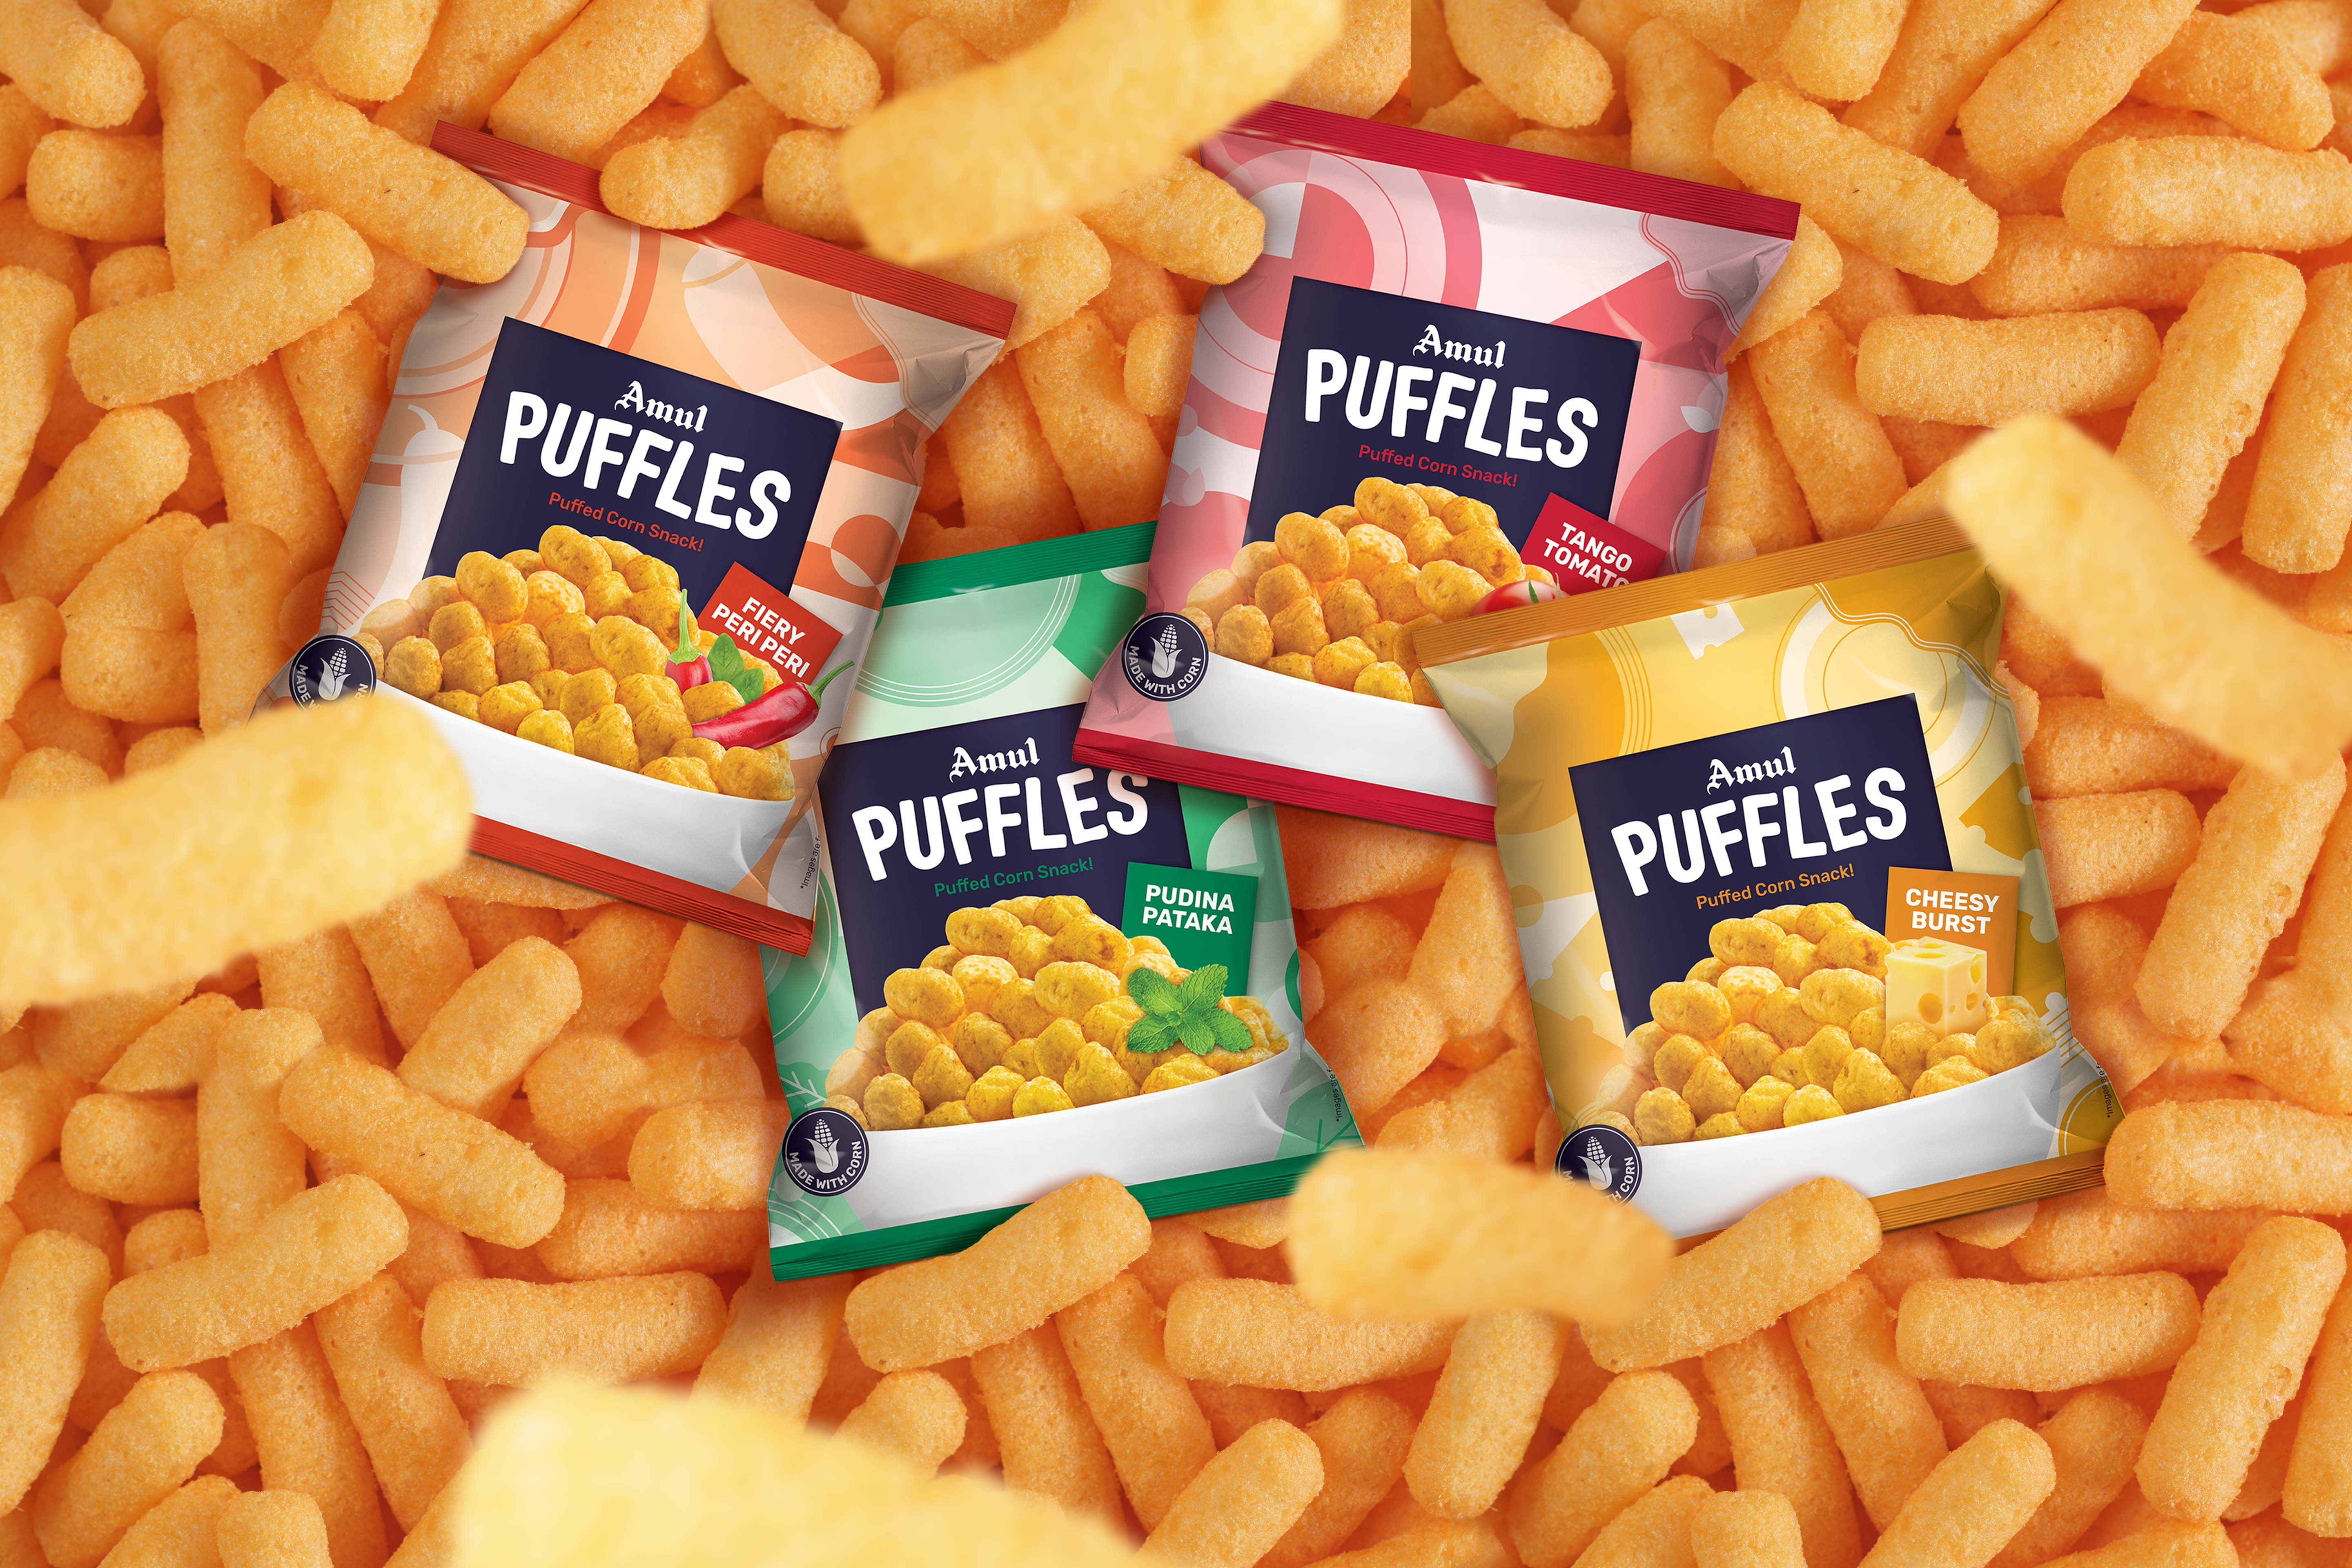 REIMAGINING INDIA'S BEST LOVED DAIRY BRAND AS A FUN SNACKS BRAND